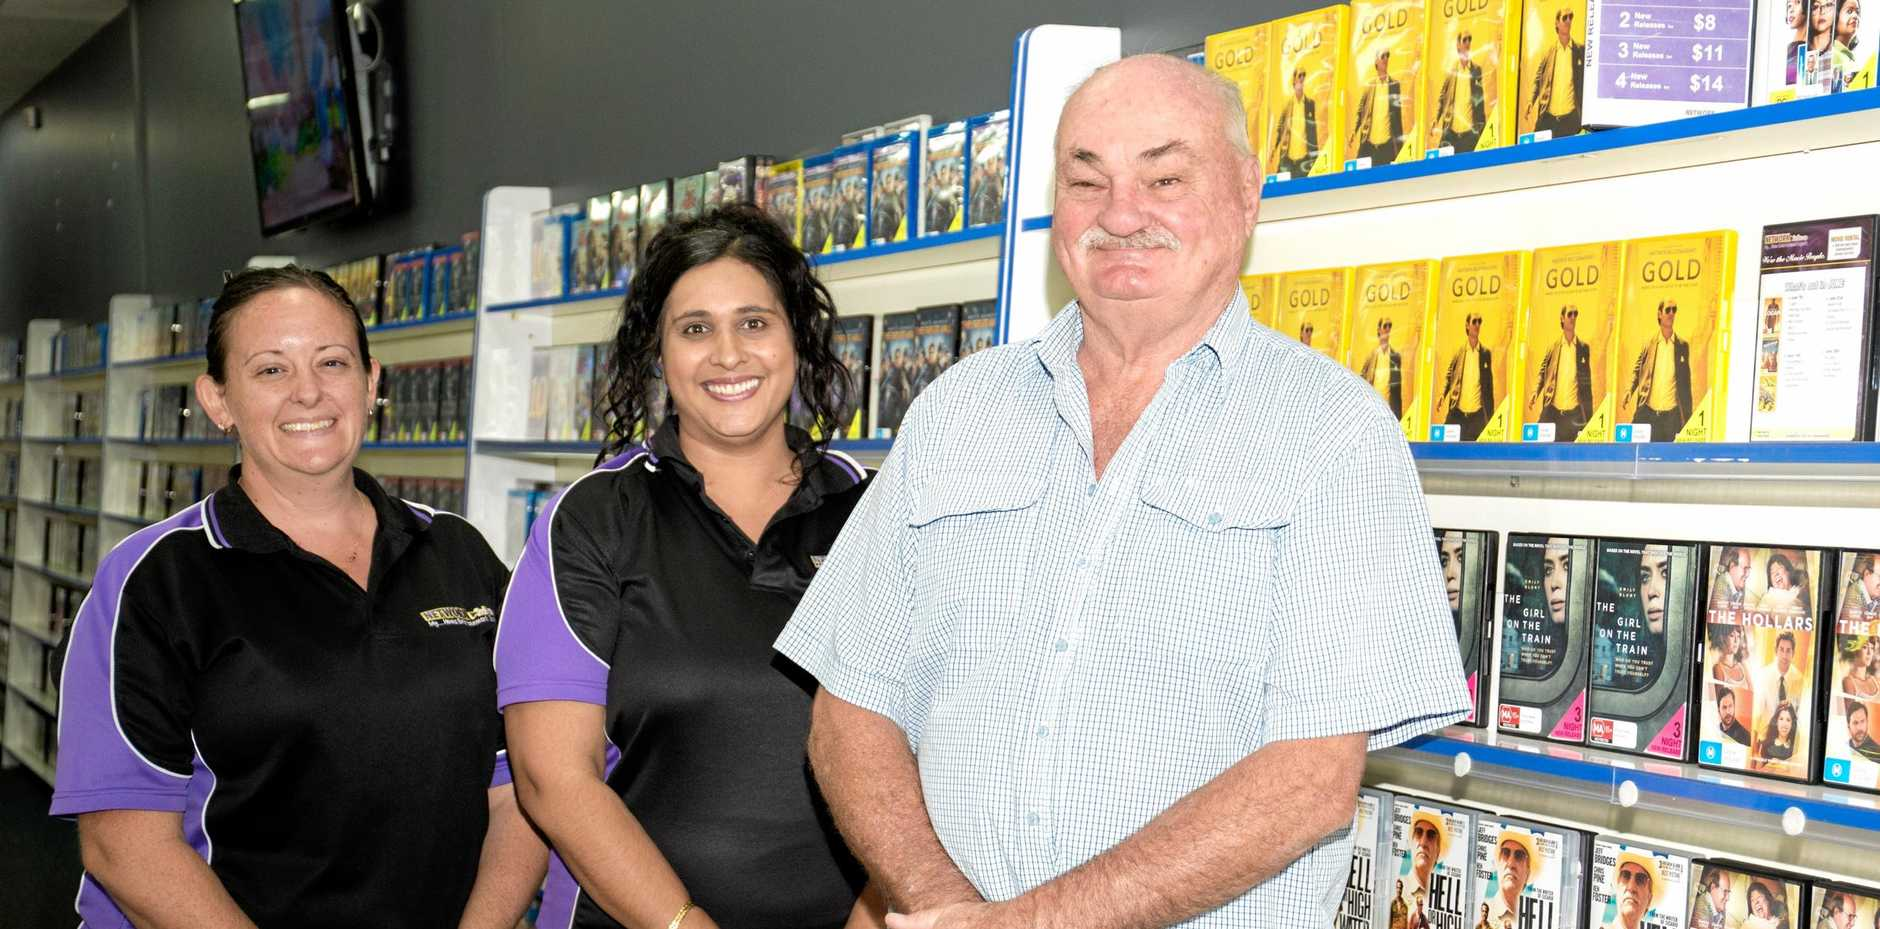 Cholena Smith, Sonia Van Twest and Peter Fife at Gympie's Network Video store last year.